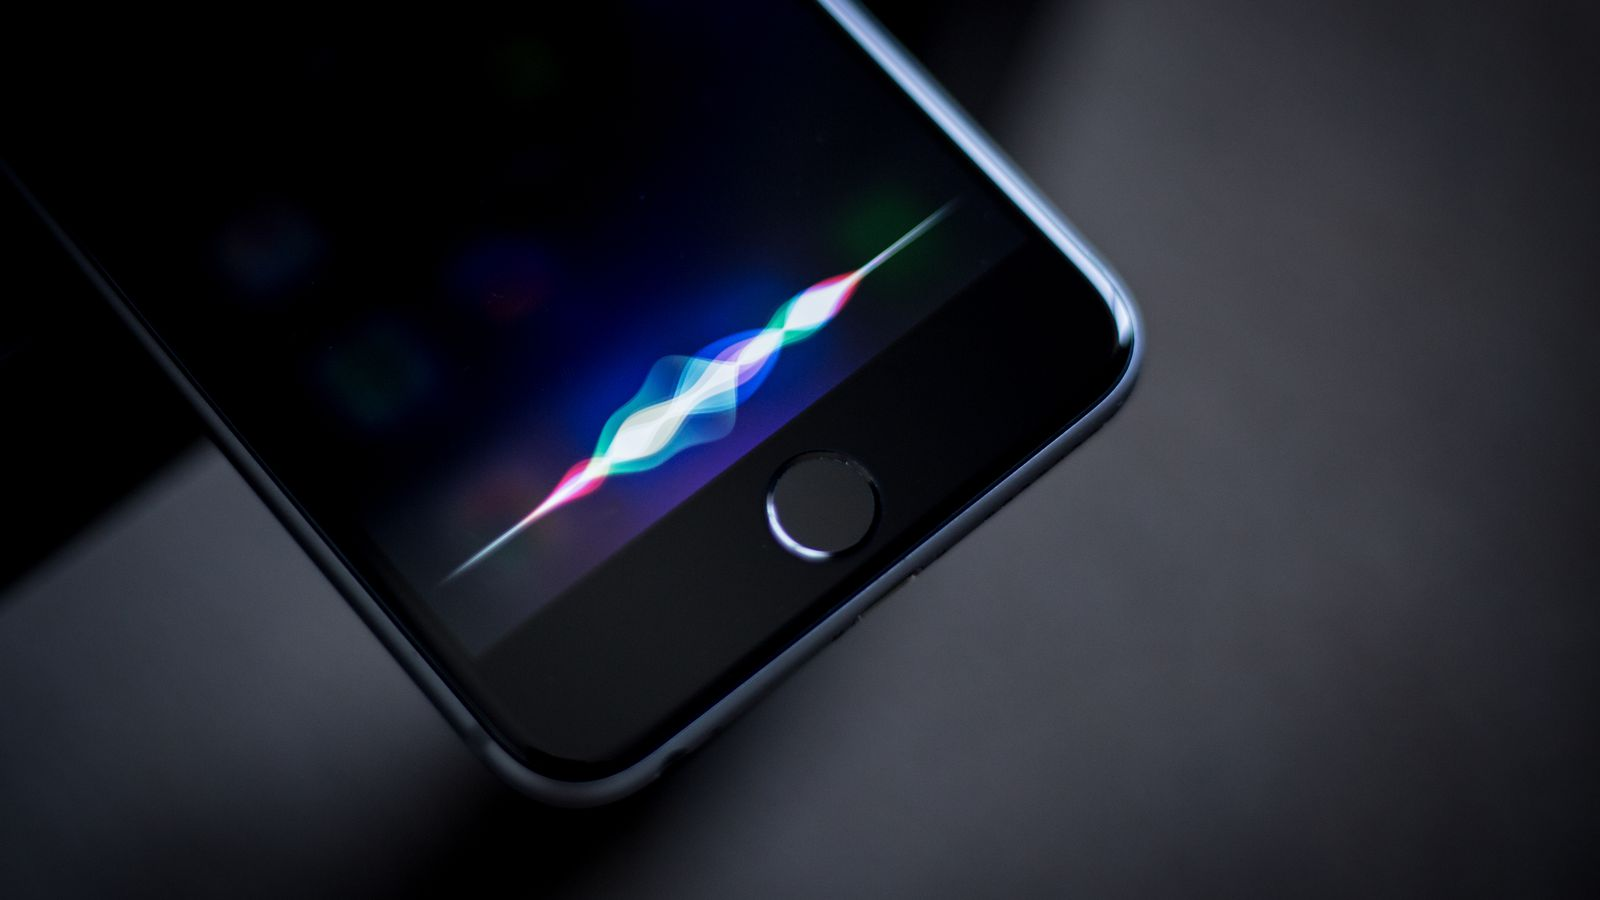 iOS 13 will Allow Siri to Directly Integrate with Music Services Such as Spotify